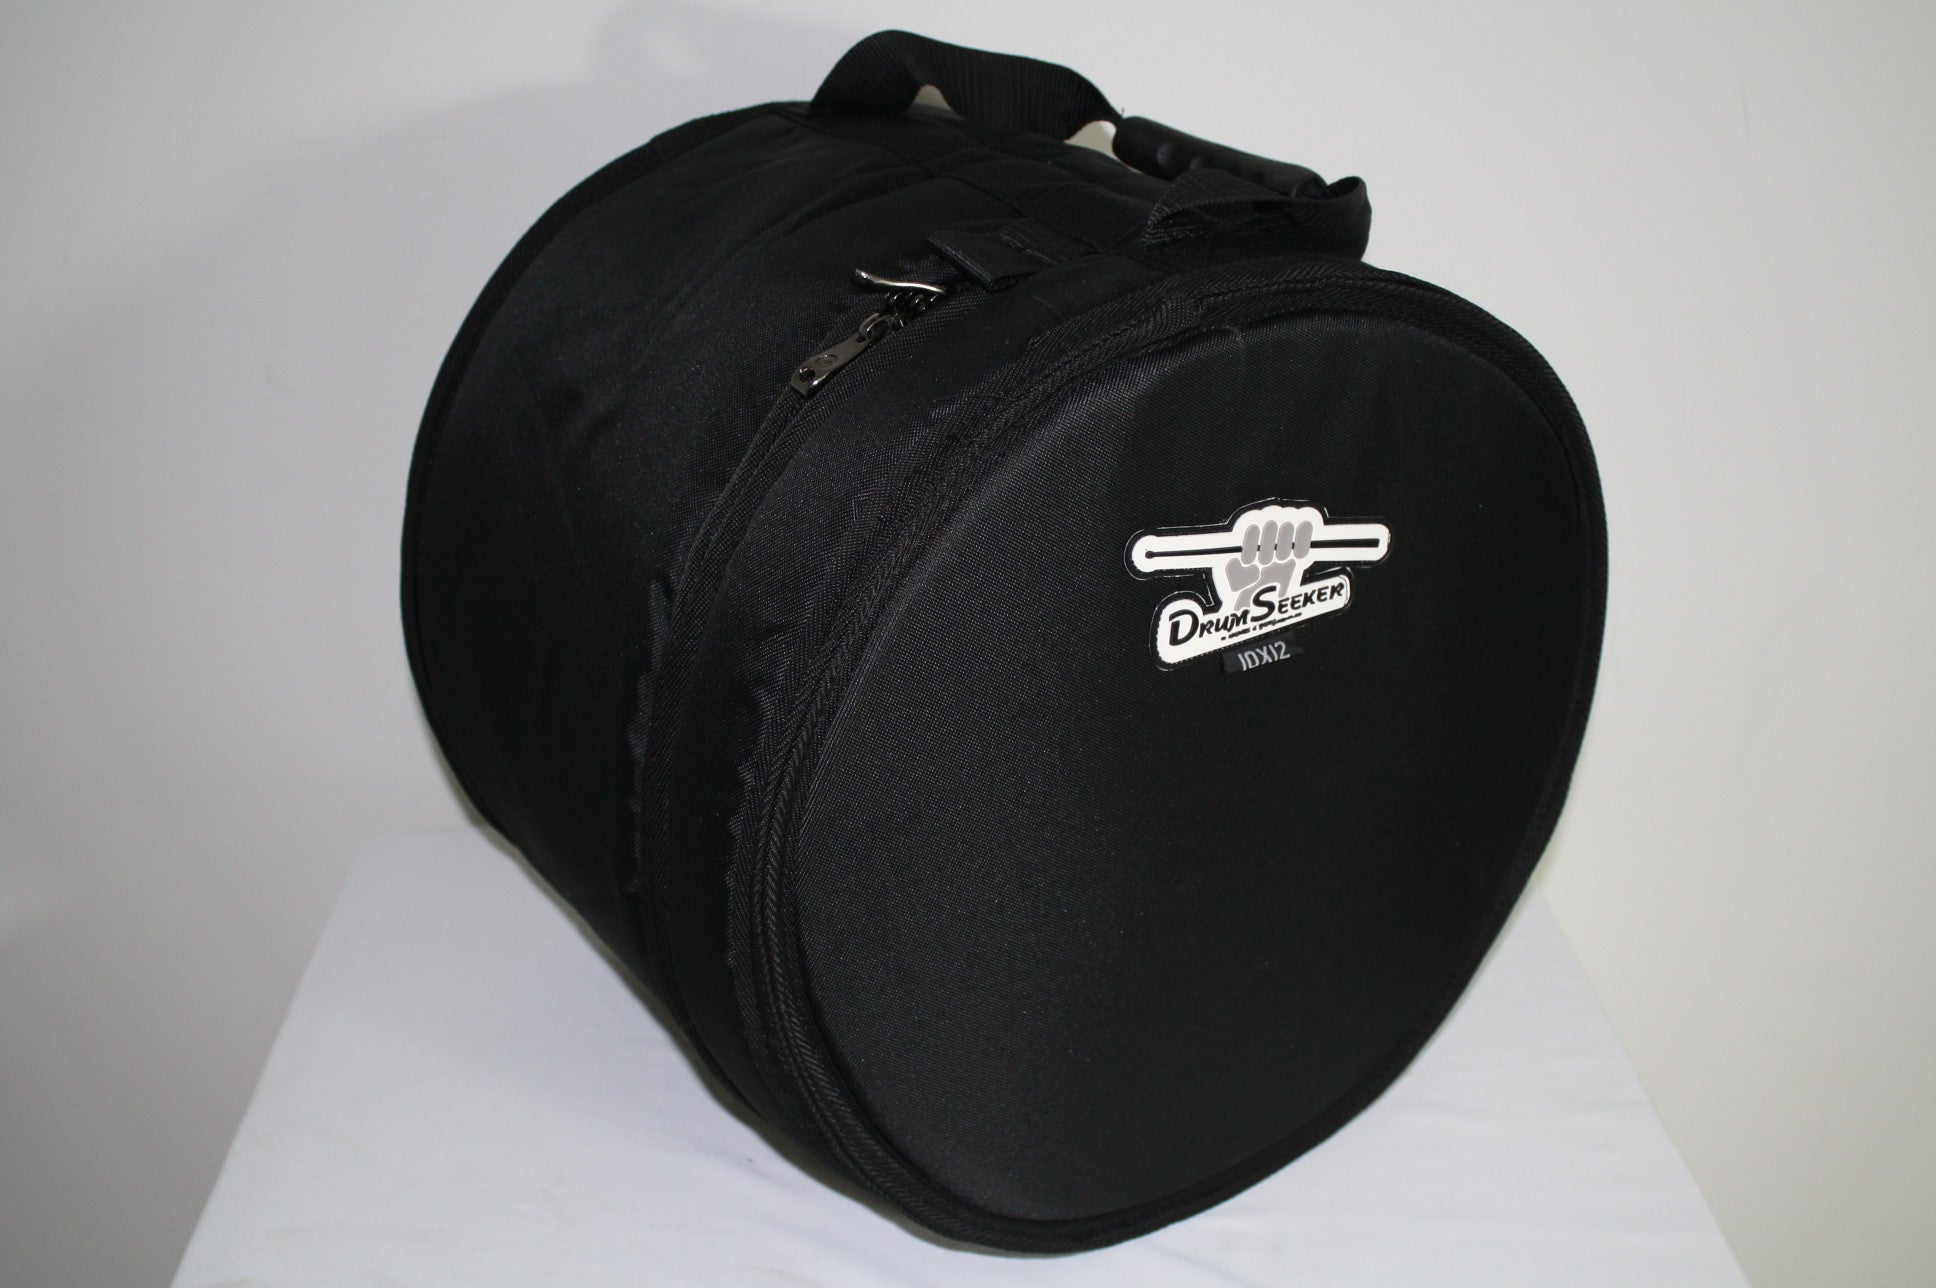 H&B  Drum Seeker 14 x 14 Inches Floor Tom Drum Bag